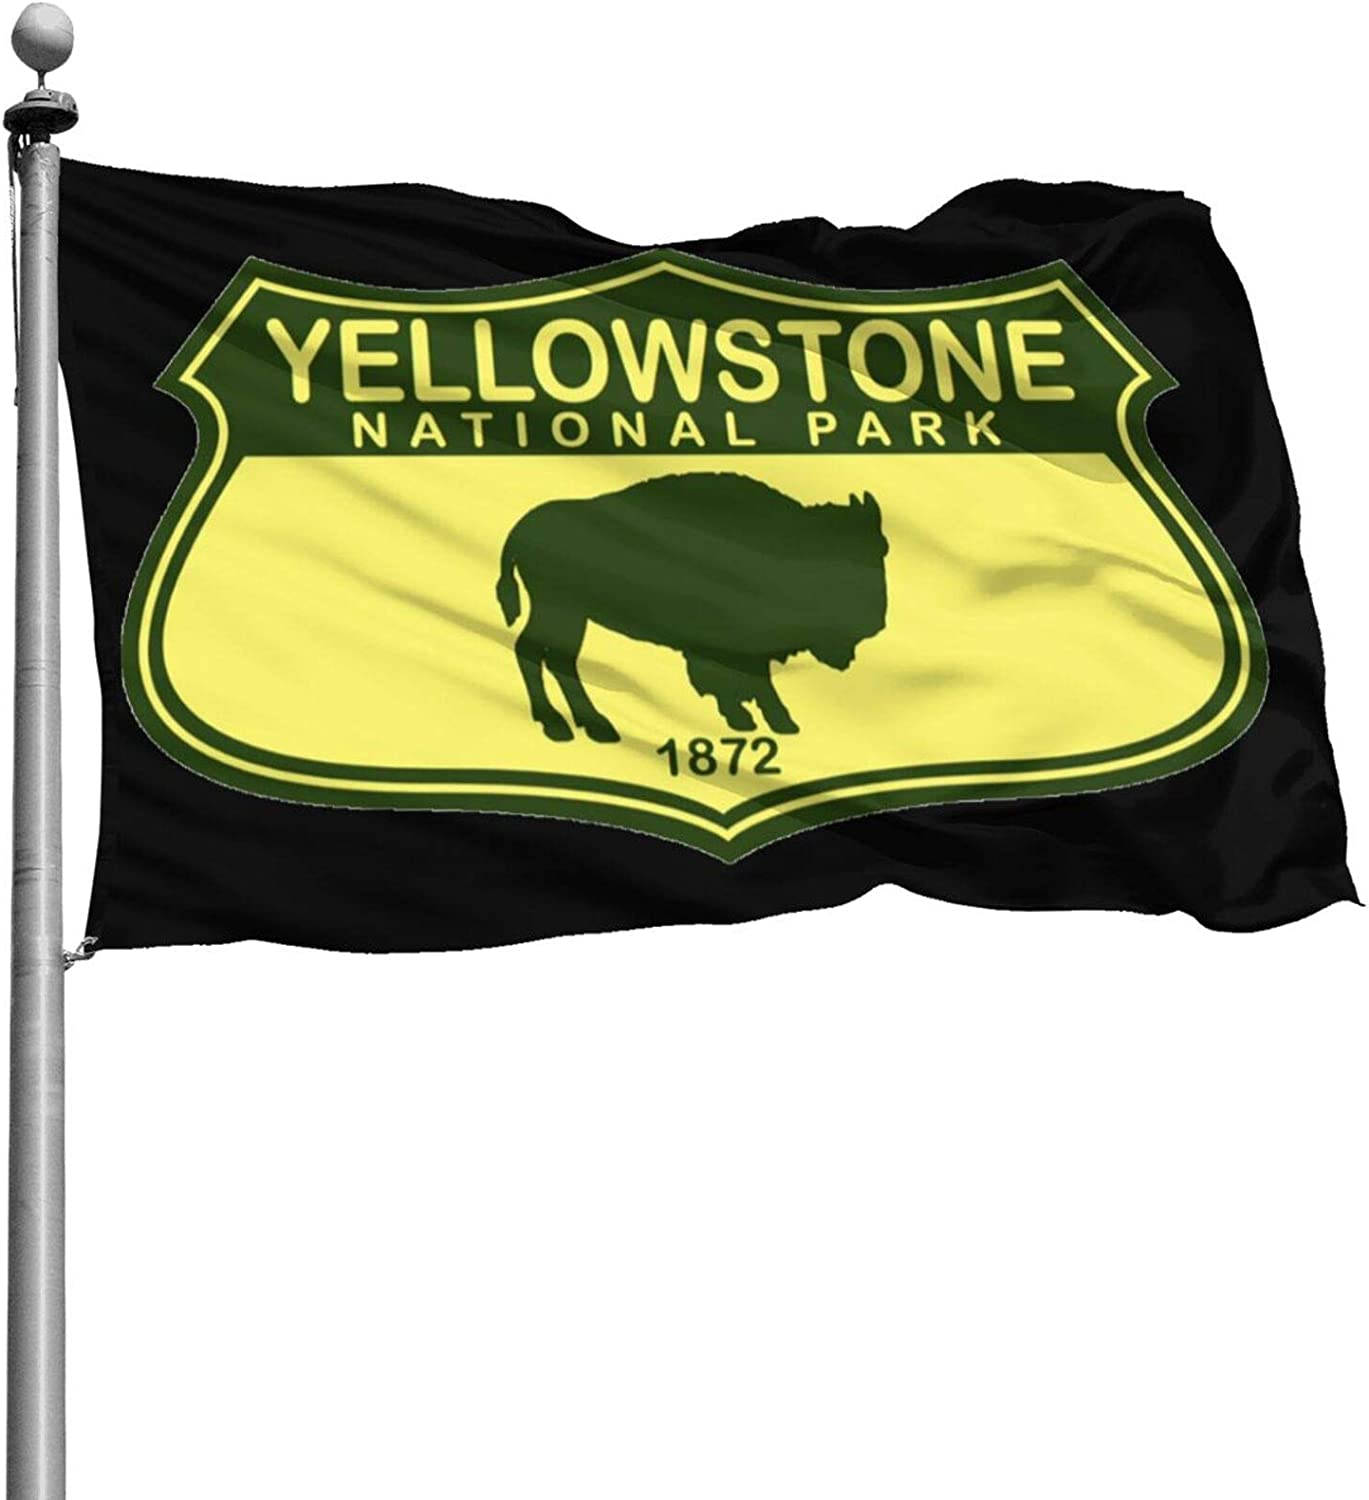 Just789 Durable Yellowstone National Park Flags Built for Outdoors-Vivid Color and Uv Fade Resistant-Outdoor Decor for Homes and Gardens 4 X 6 Ft